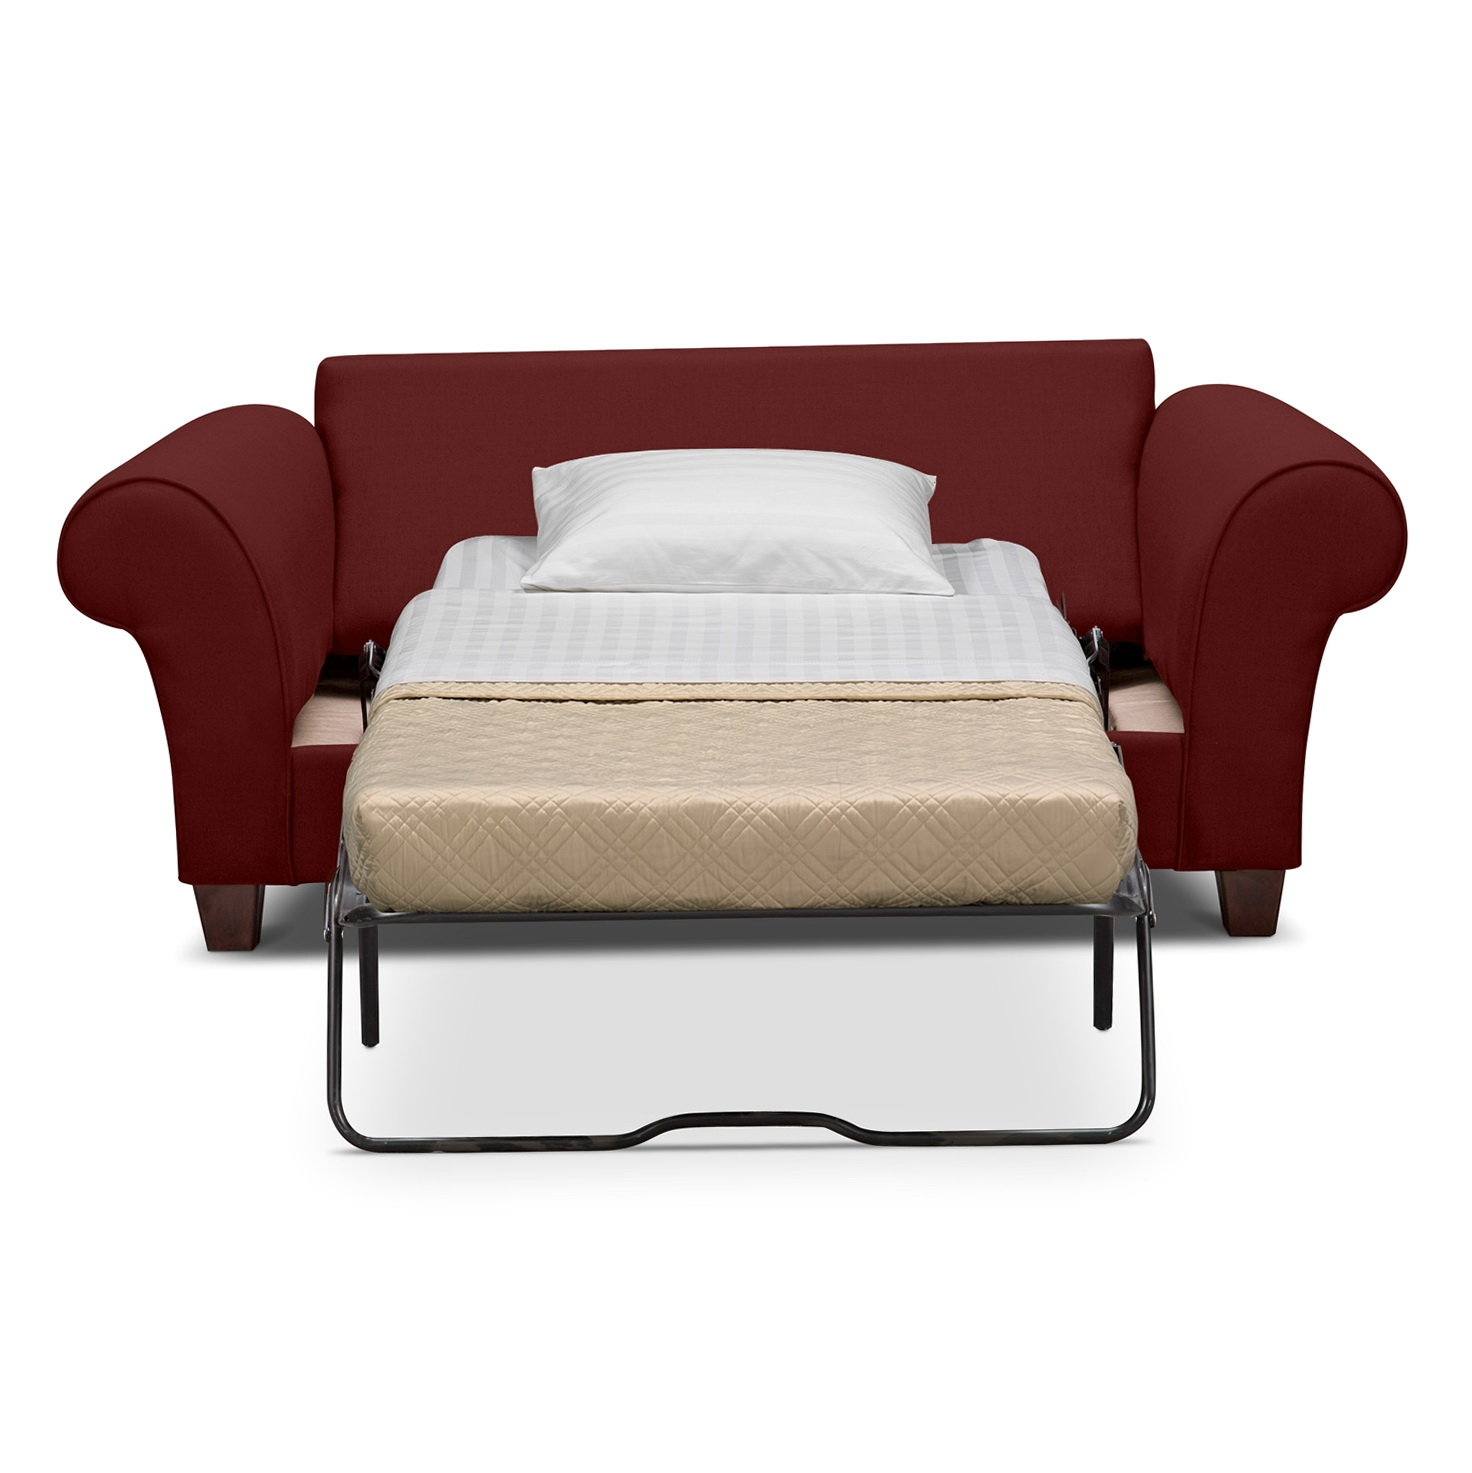 Convertible Chair Bed Twin Beds 3823 Home Design Ideas